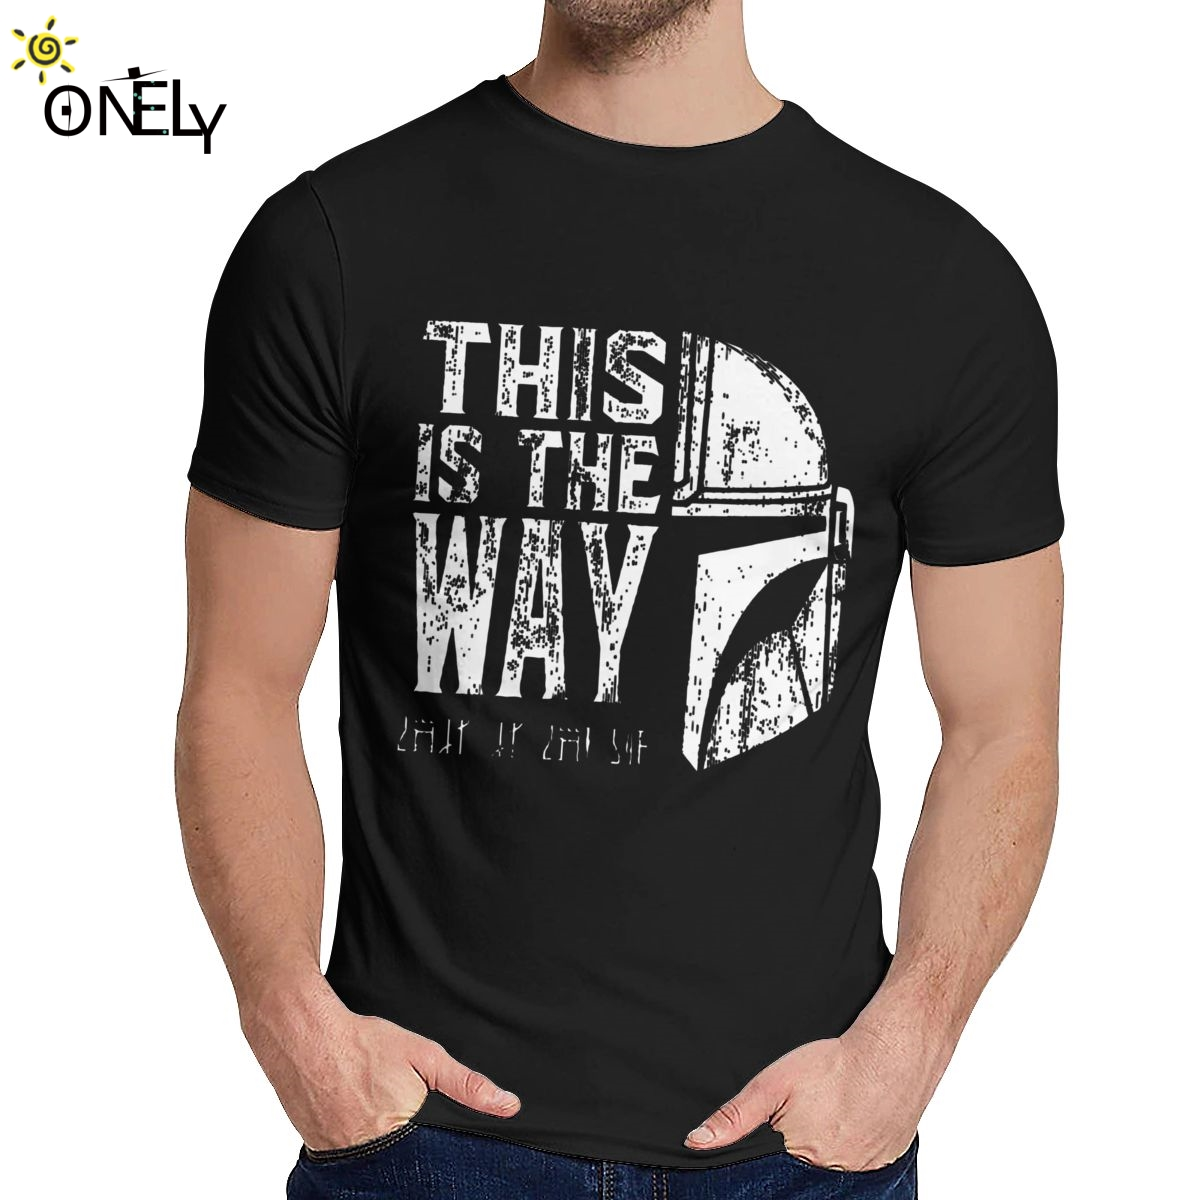 O-neck The Mandalorian Star Wars This Is My Way T-<font><b>shirt</b></font> Graphic Print For Male Slim T <font><b>Shirt</b></font> <font><b>Big</b></font> Size image